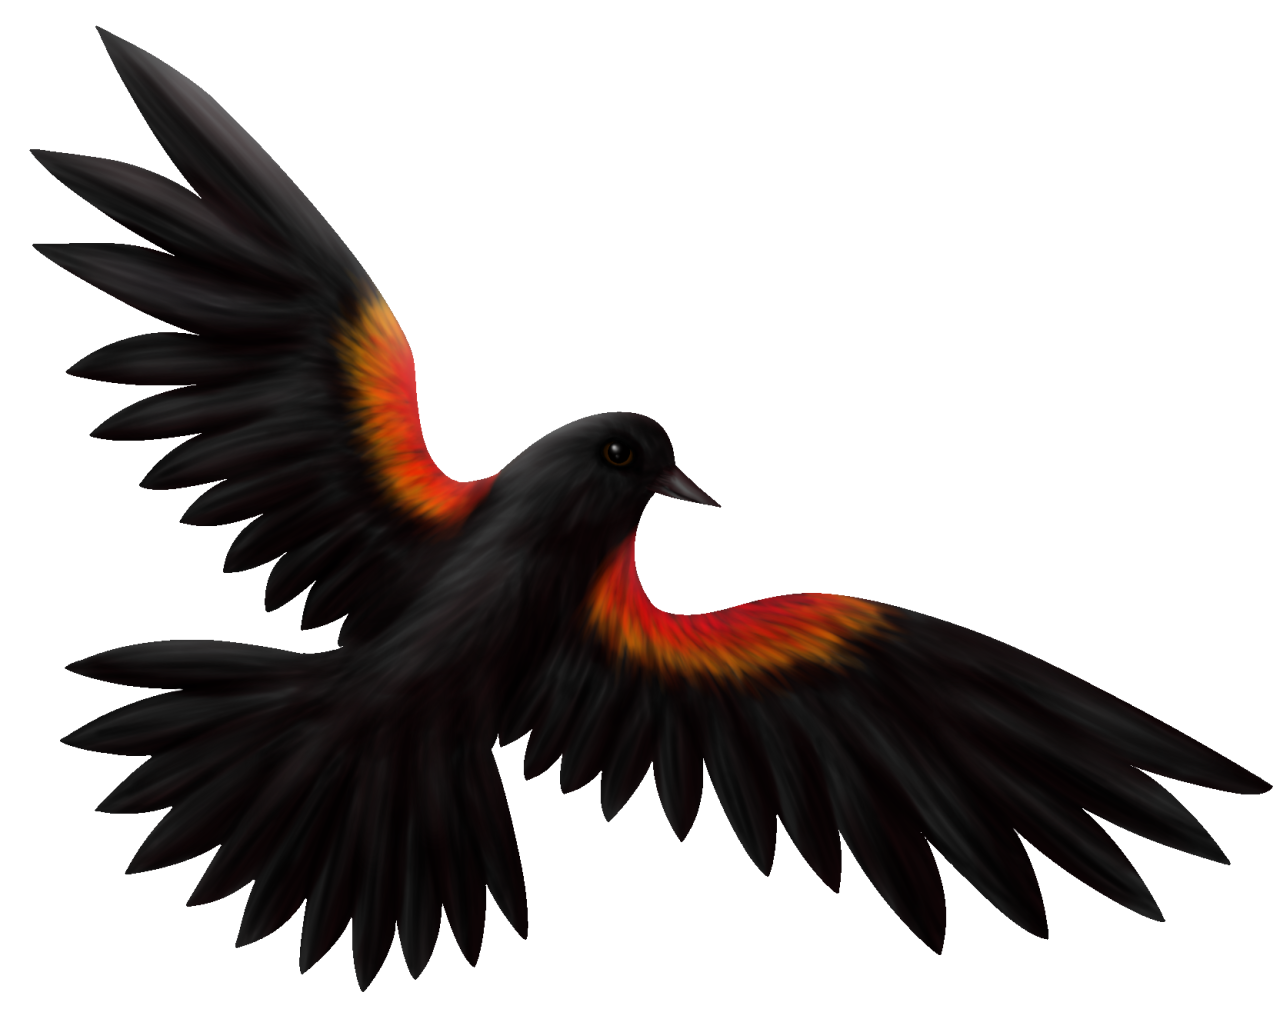 clipart royalty free library The lone artist red. Blackbird drawing gothic